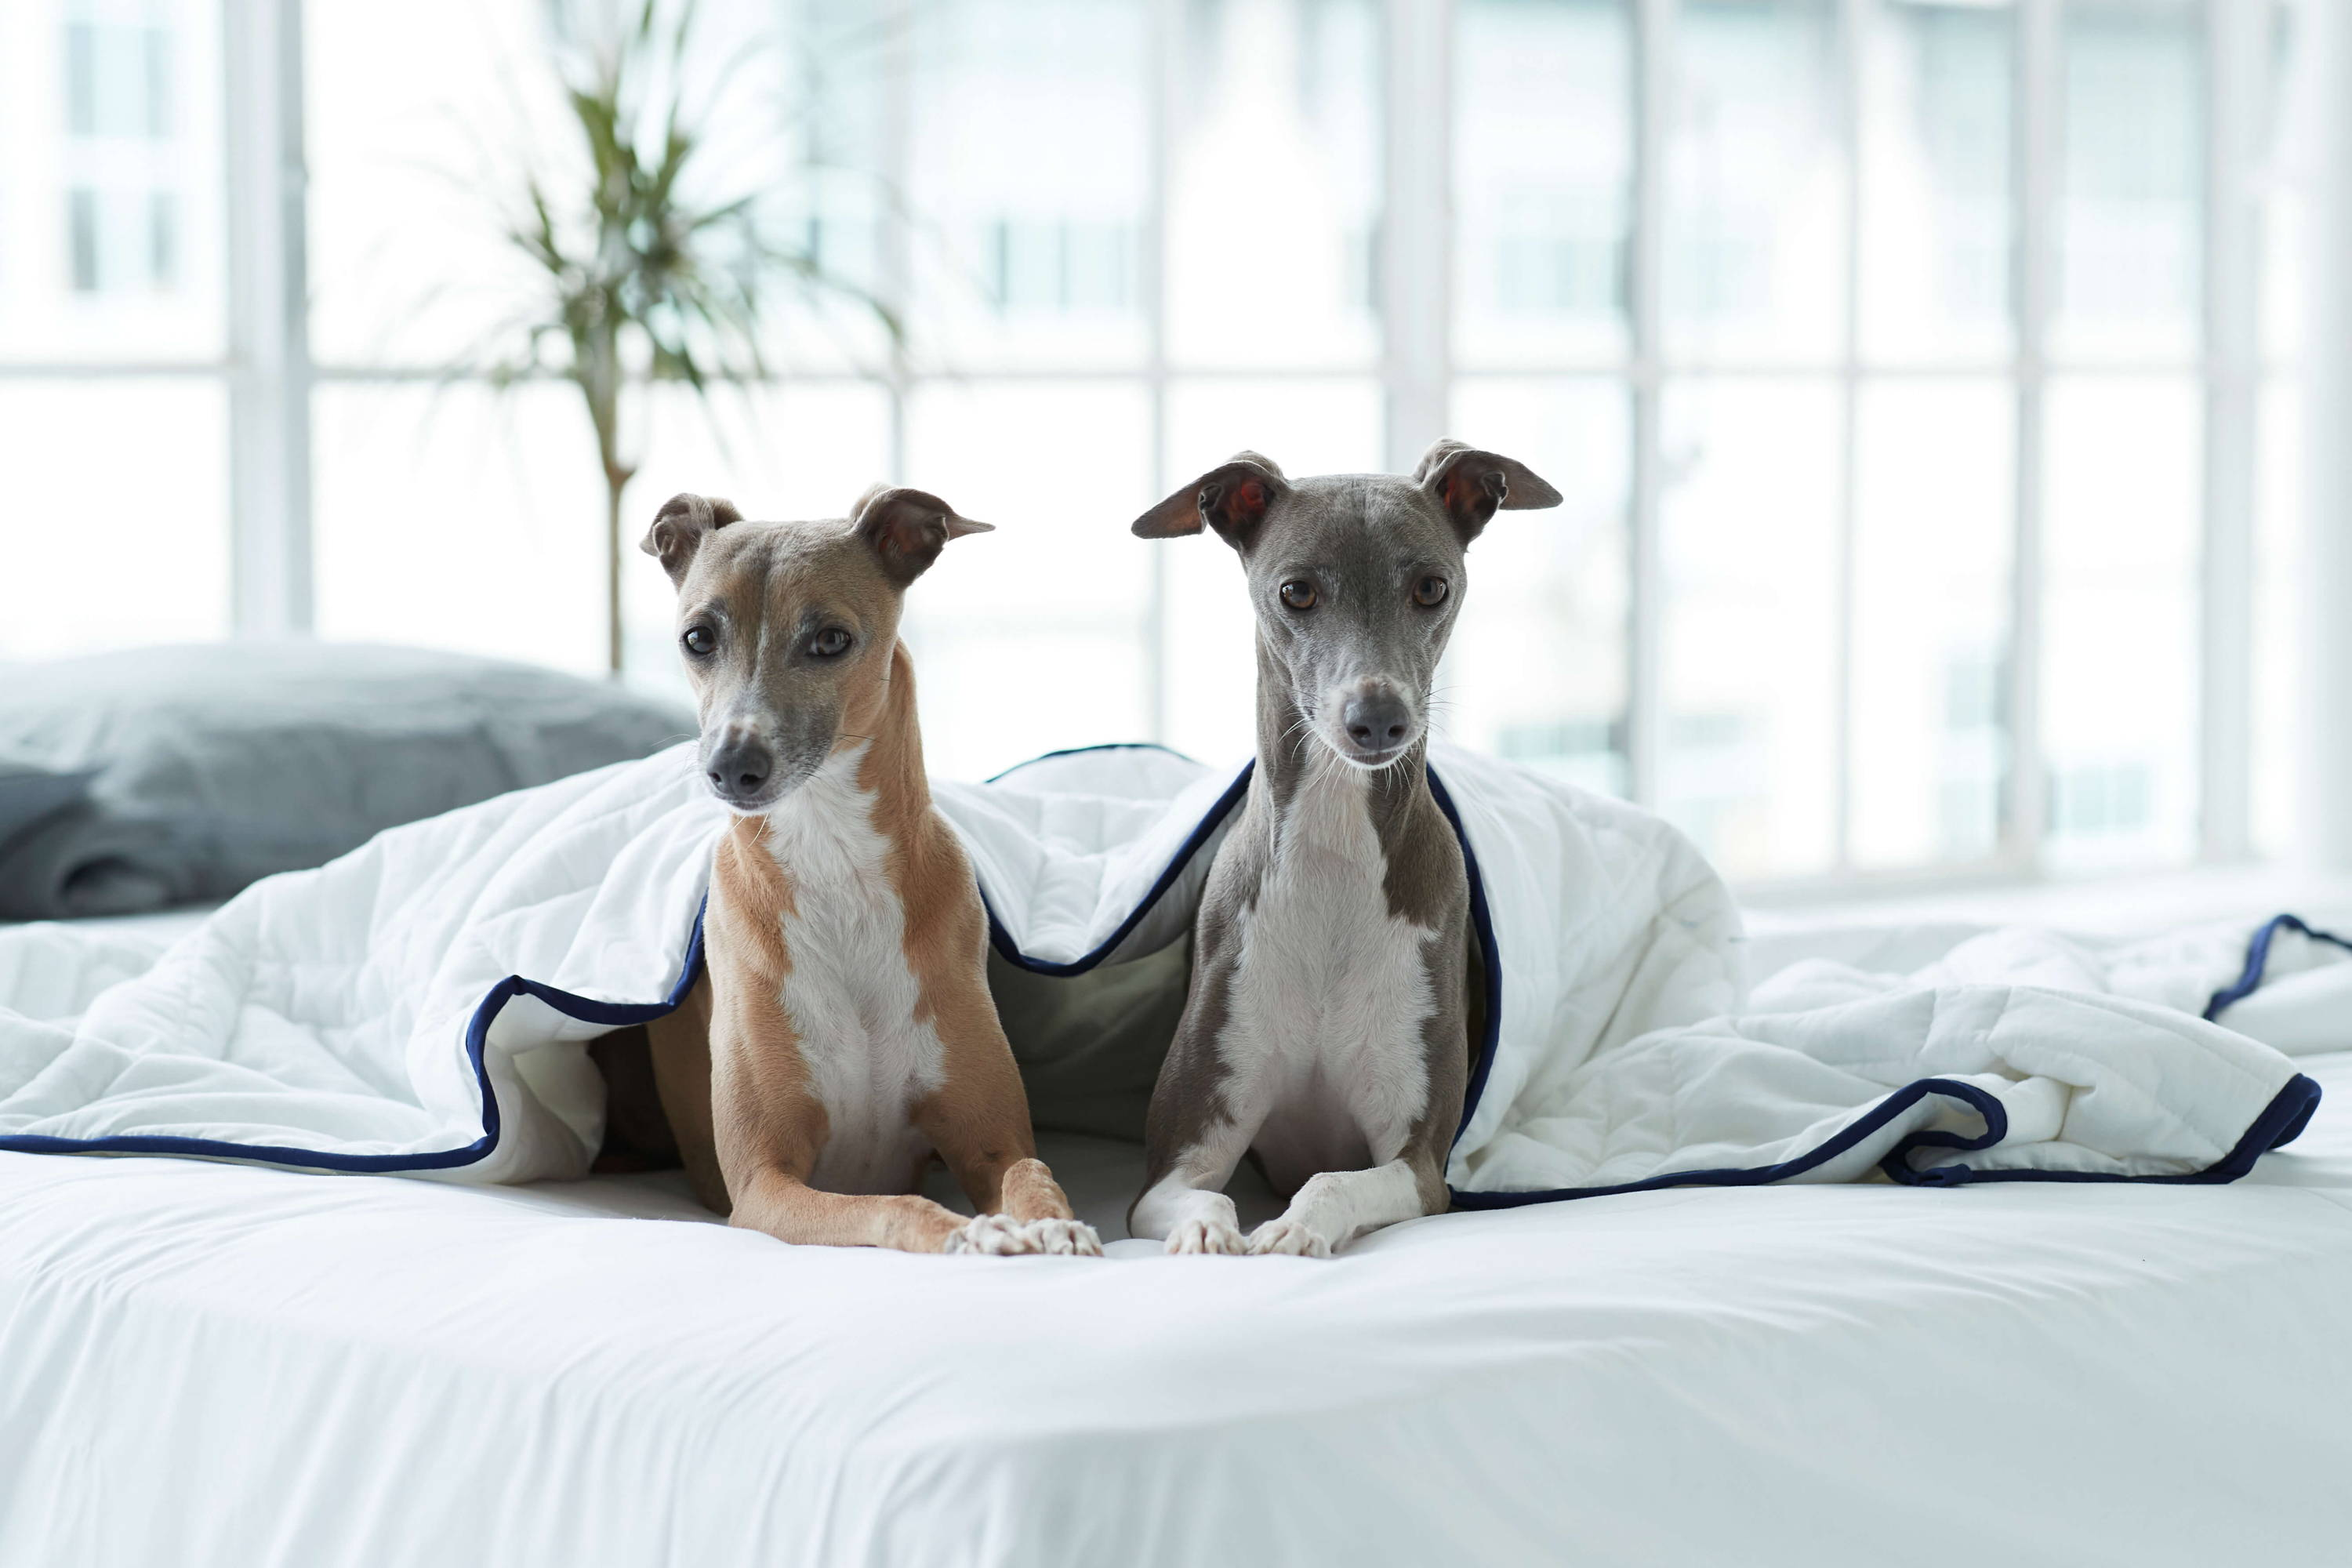 Two cute whippet dogs in Groundd Weighted Blanket nz without cover